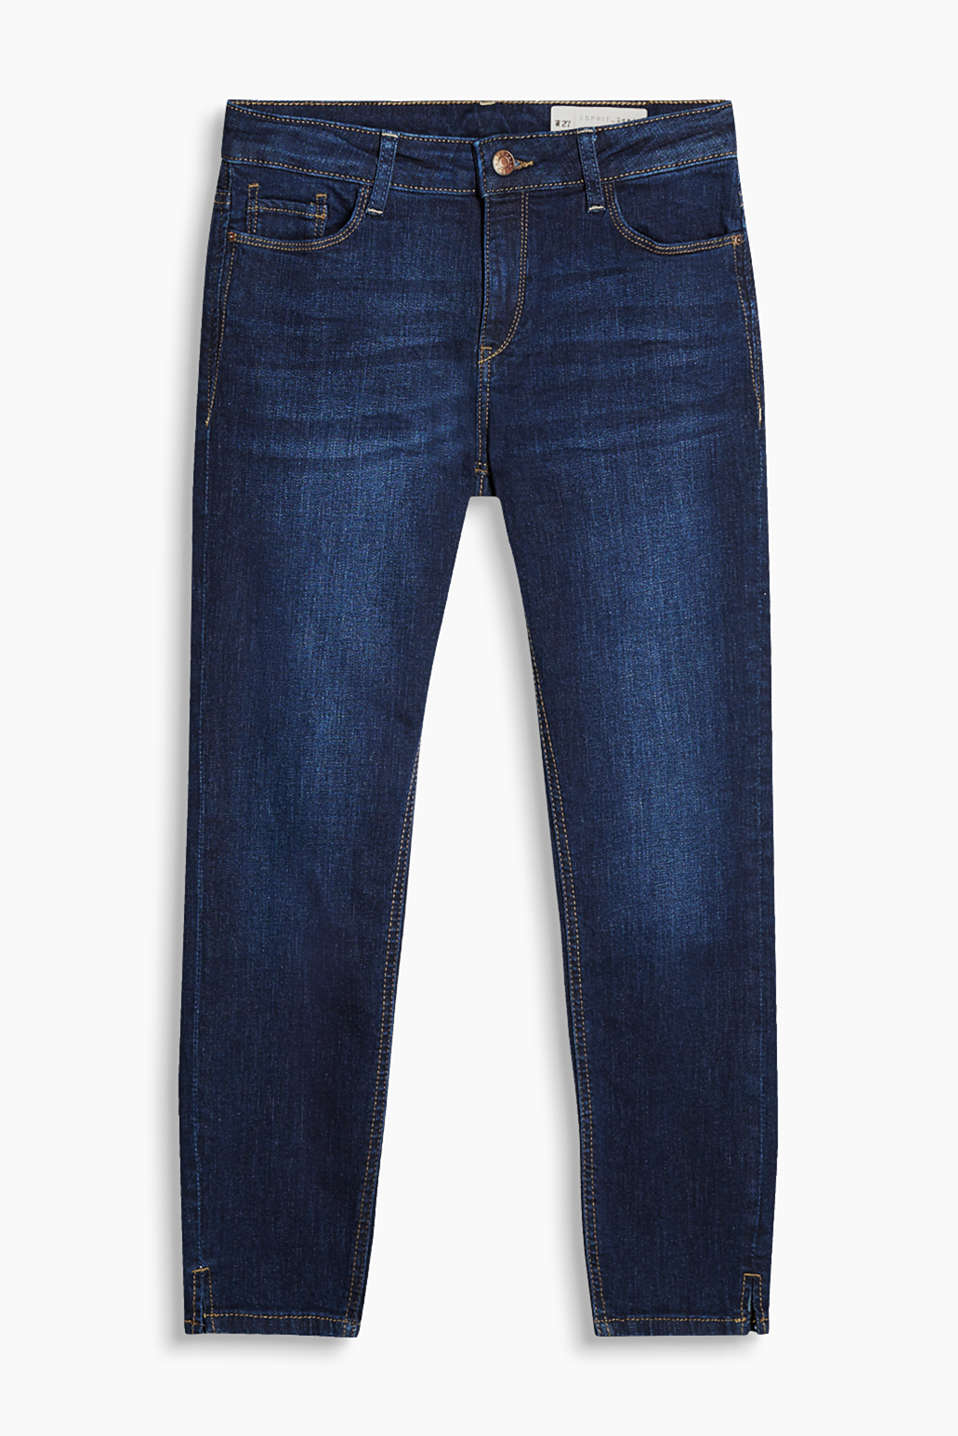 5-pocket jeans made of cotton denim with added stretch for comfort